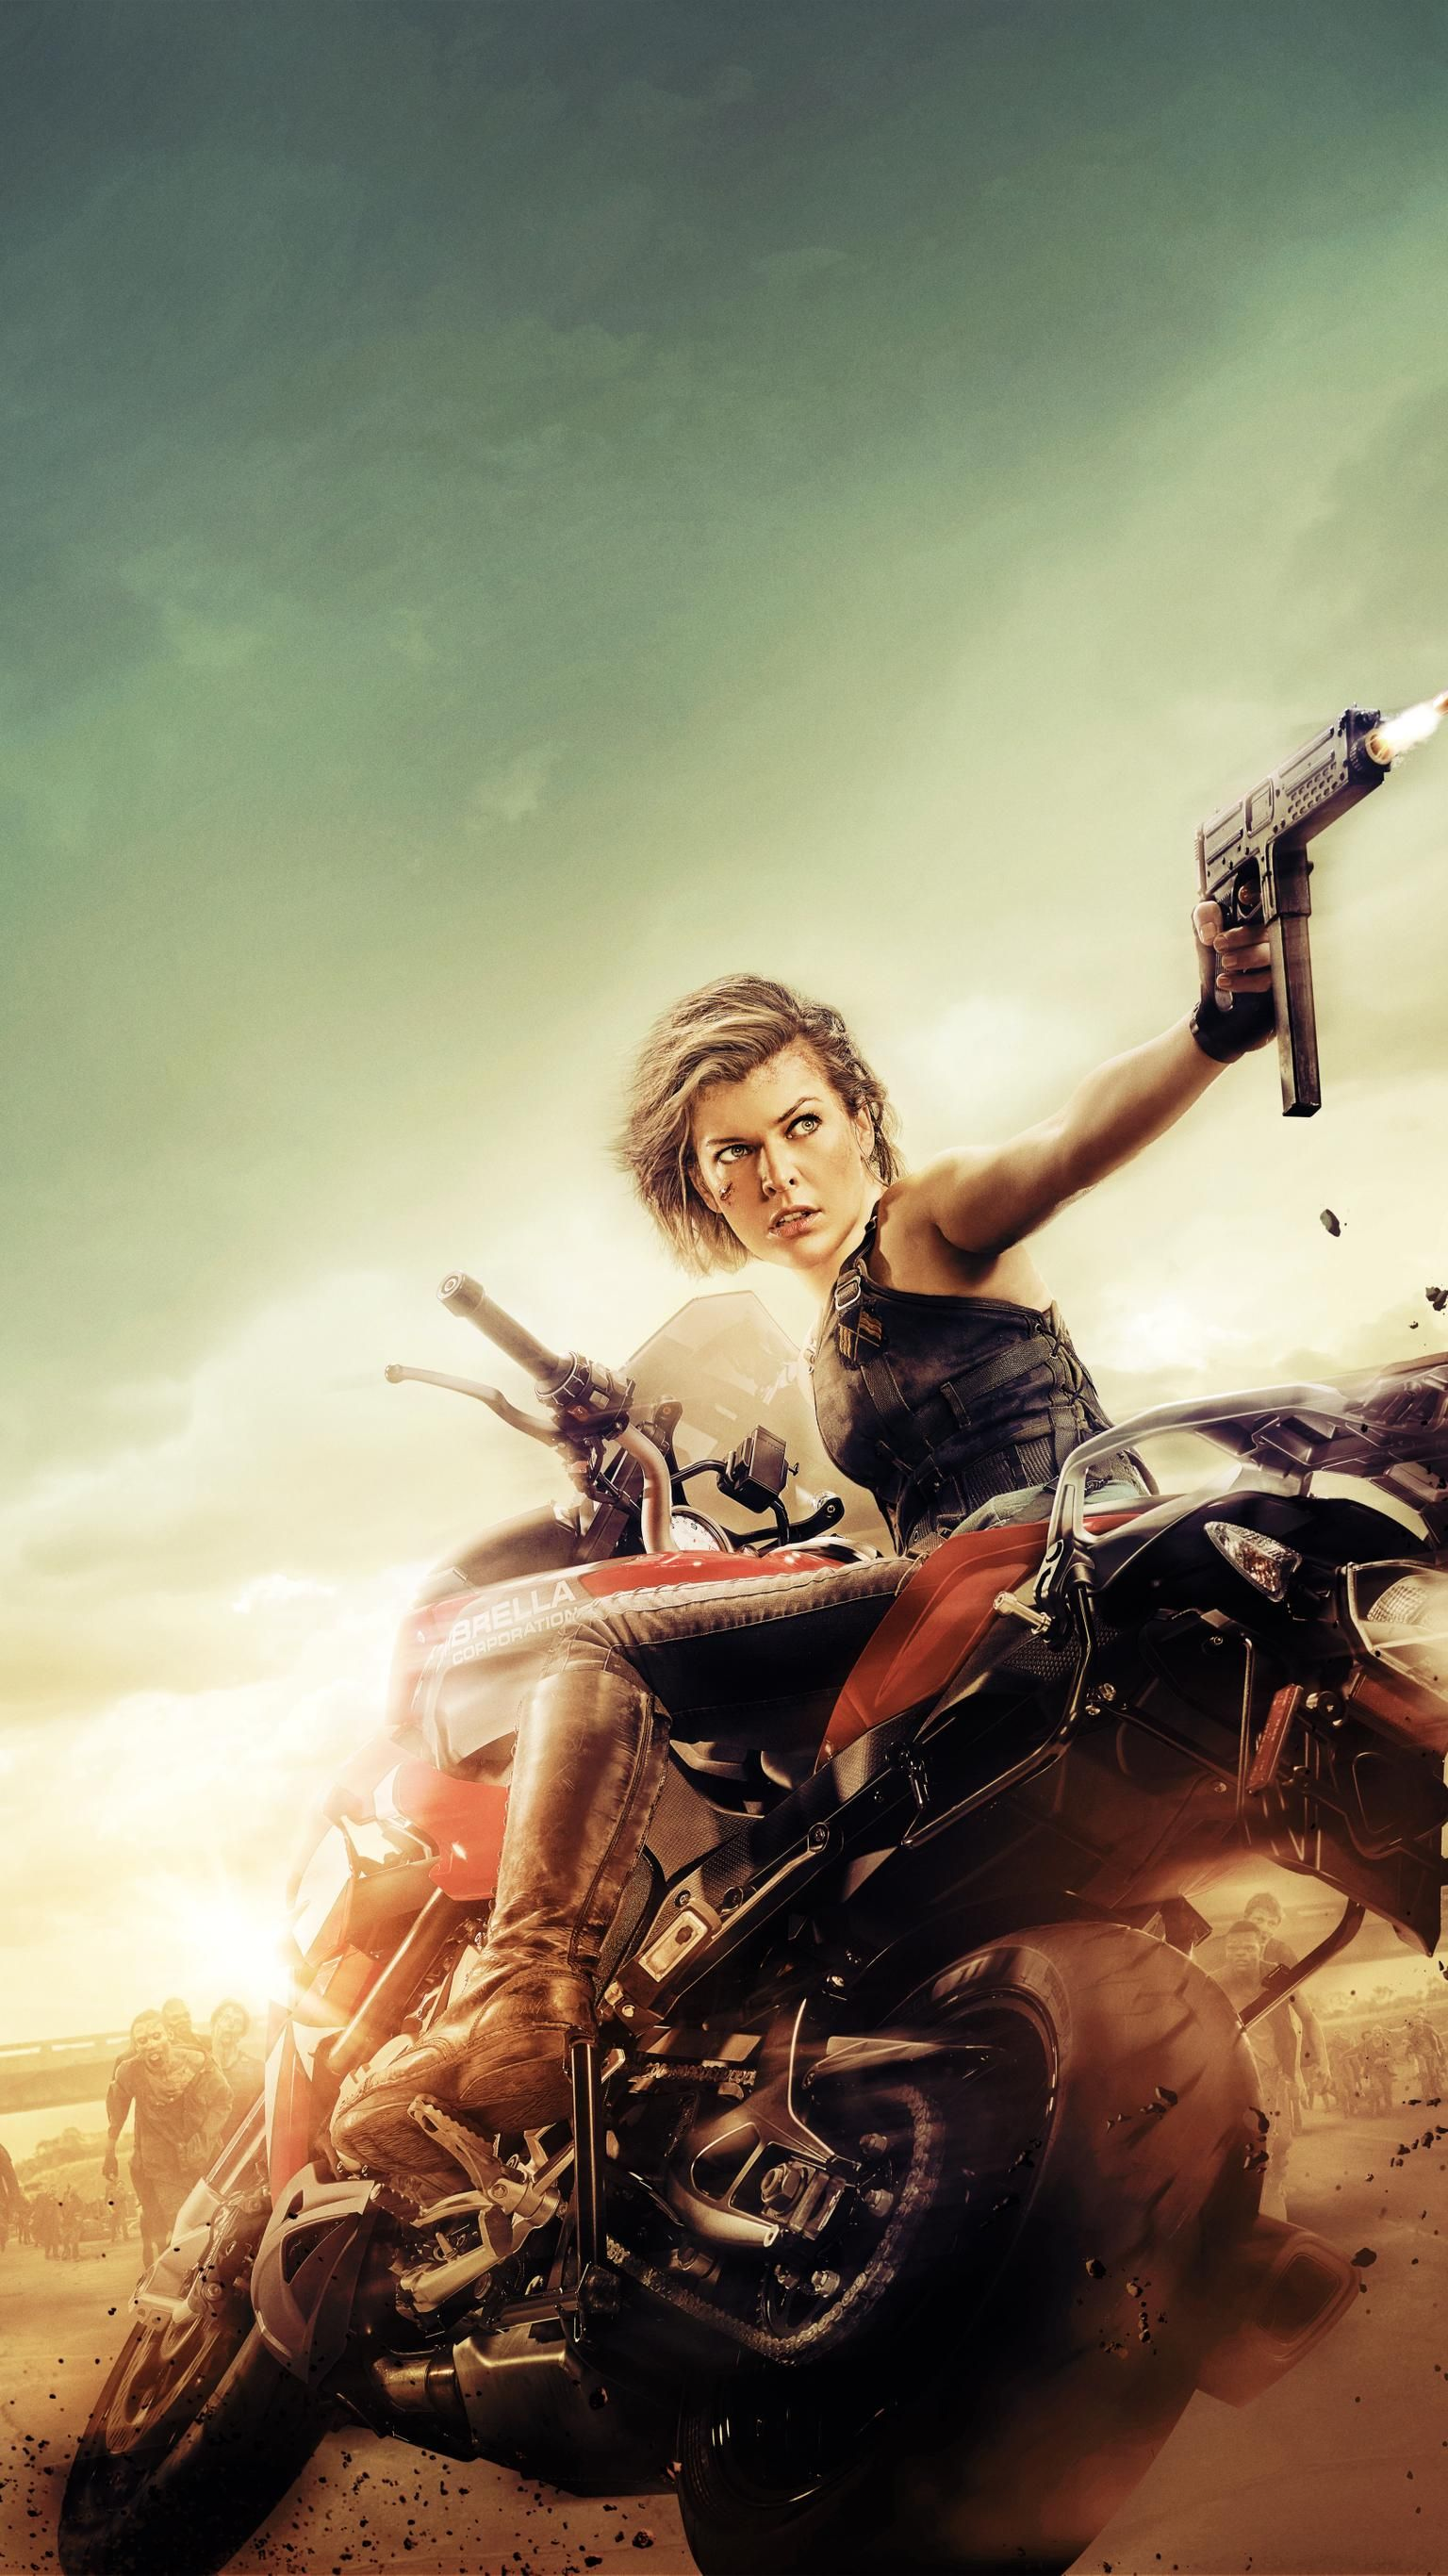 Resident Evil: The Final Chapter (2016) Phone Wallpaper | Moviemania | Resident  evil alice, Resident evil, Resident evil movie